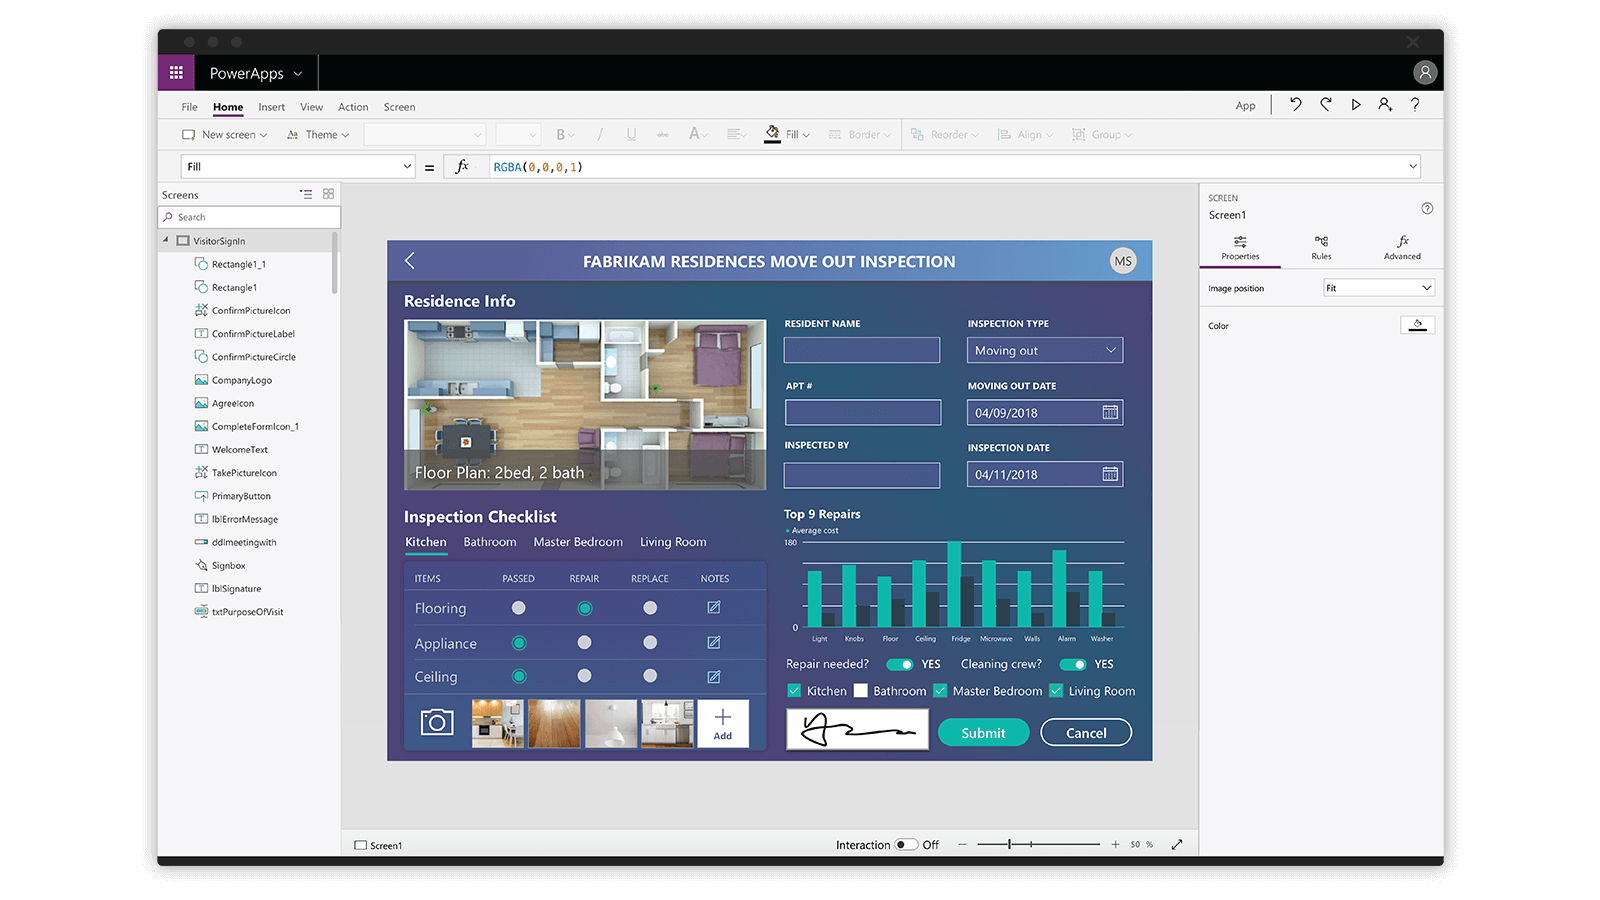 Microsoft PowerApps user interface